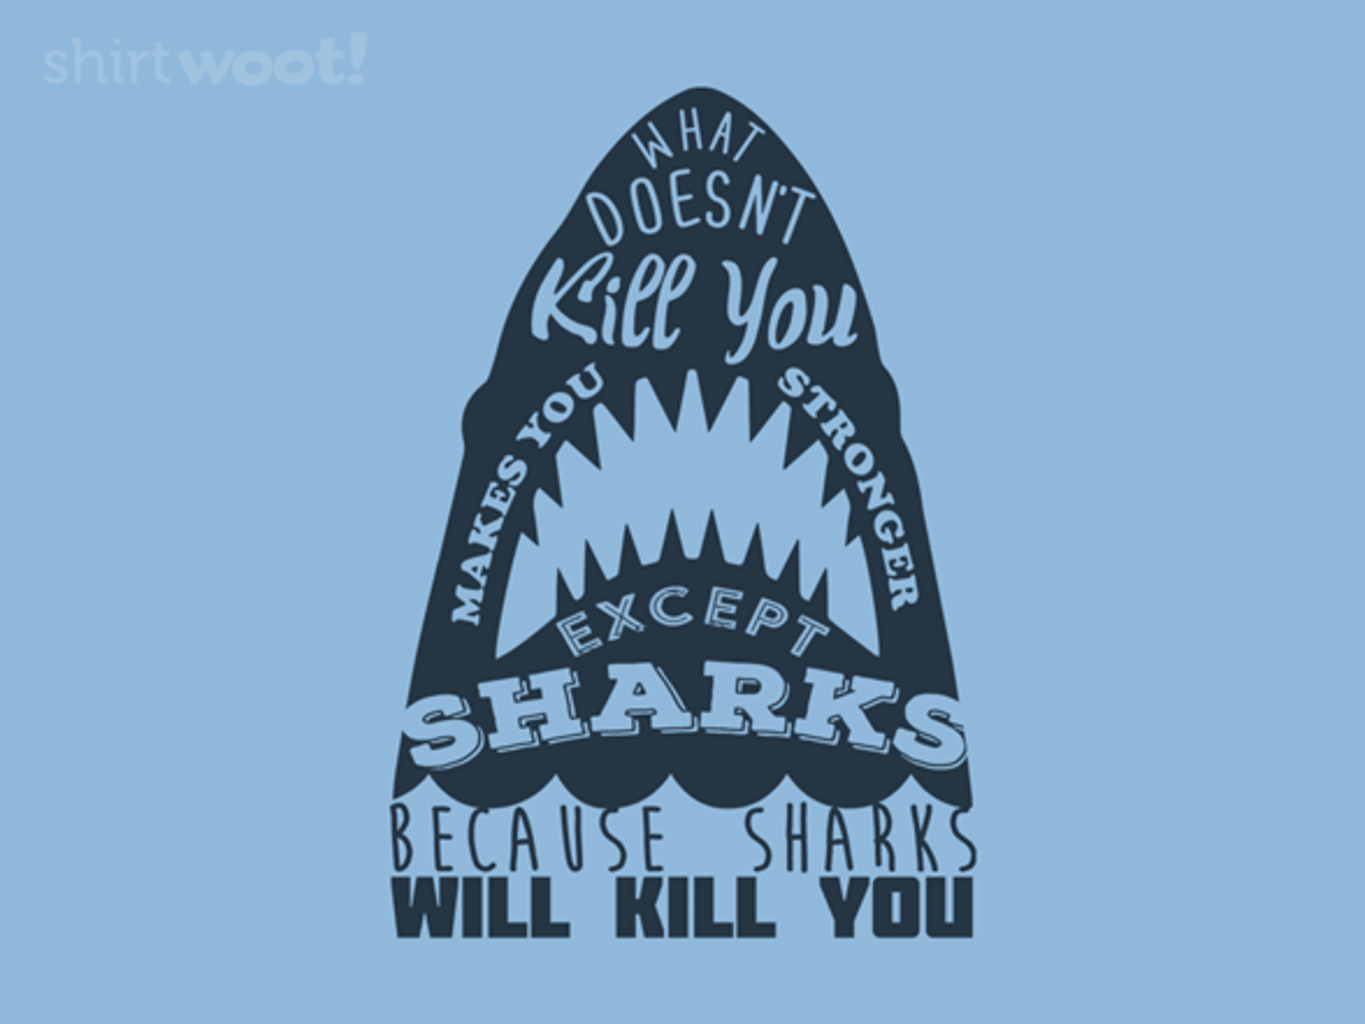 Woot!: Sharks Will Kill You! - $15.00 + Free shipping